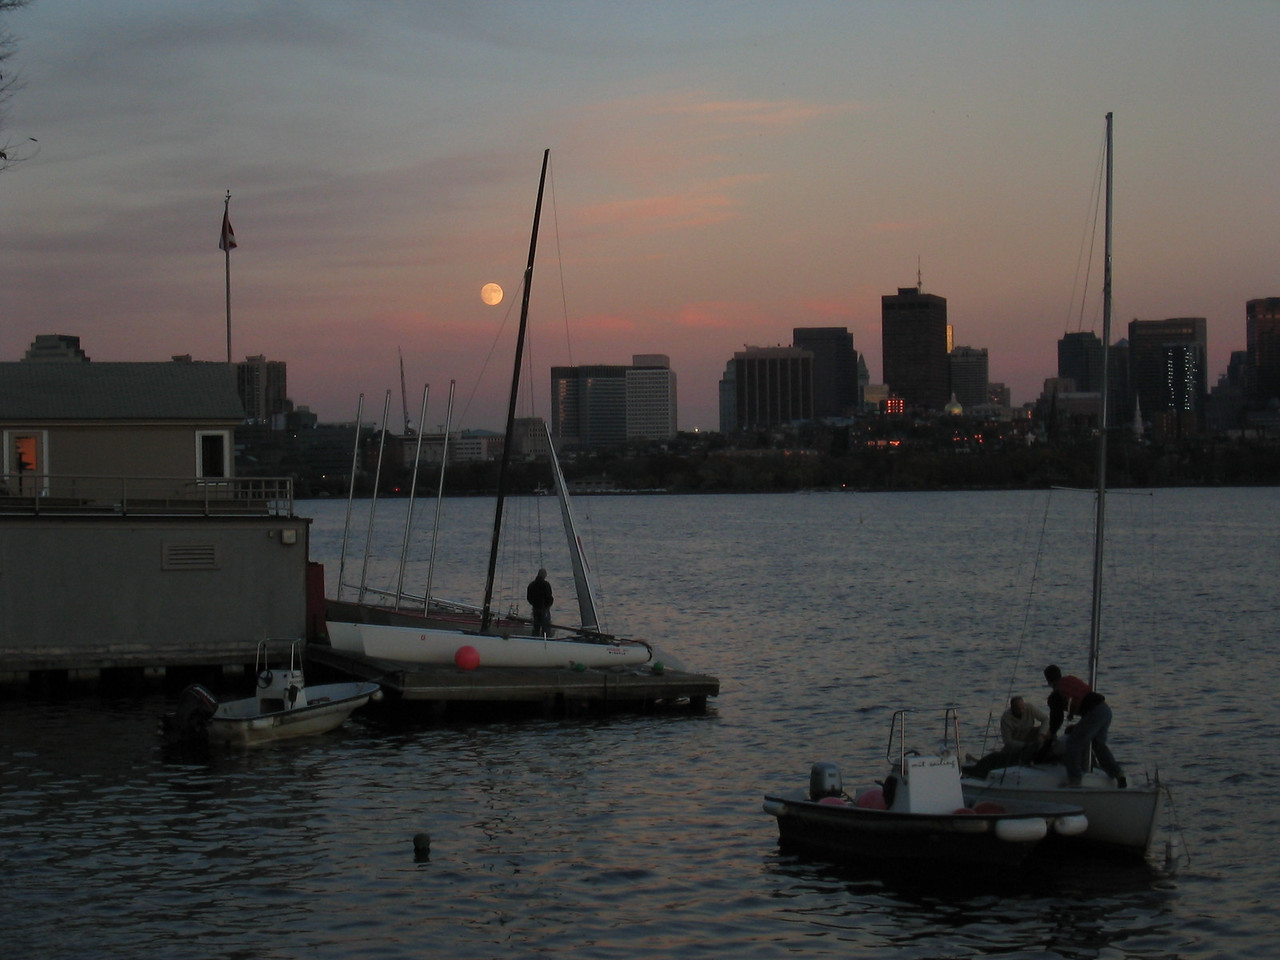 2003 11 07 Friday - Sailing on the Charles River @ MIT - Bad moon rising, 1 day before lunar eclipse